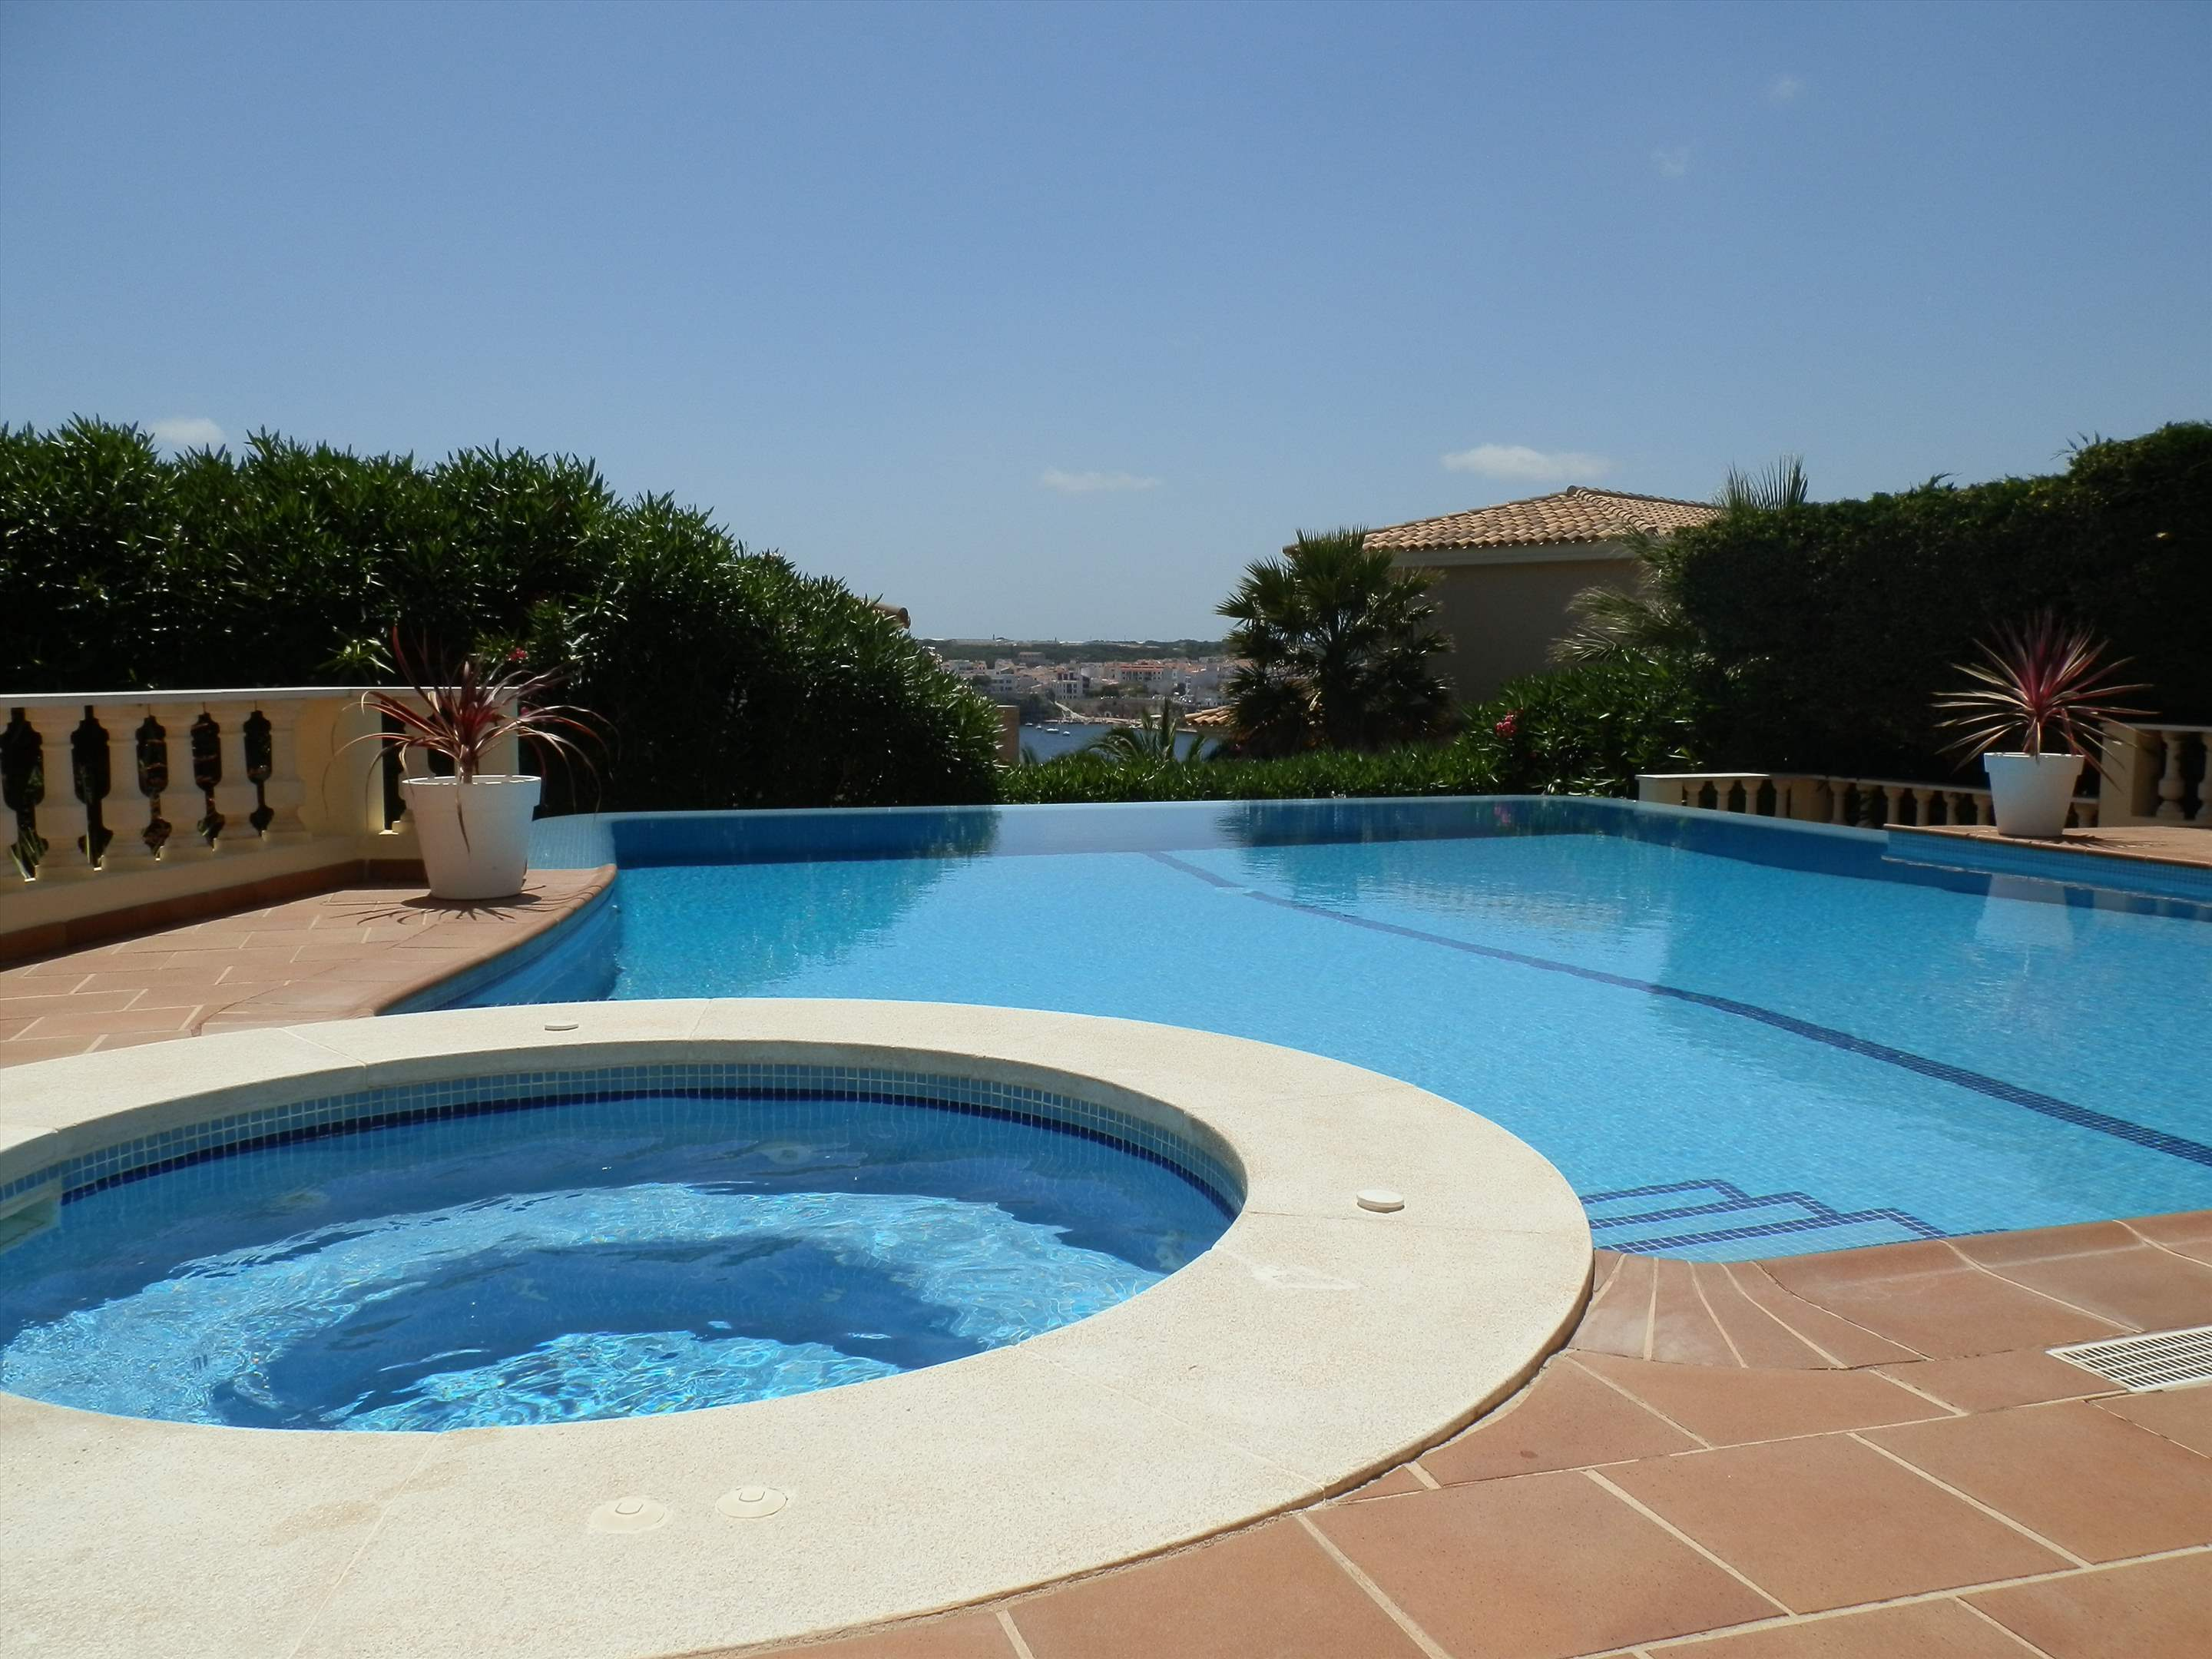 Son De Mar, 5 bedroom villa in Mahon, San Luis & South East, Menorca Photo #1